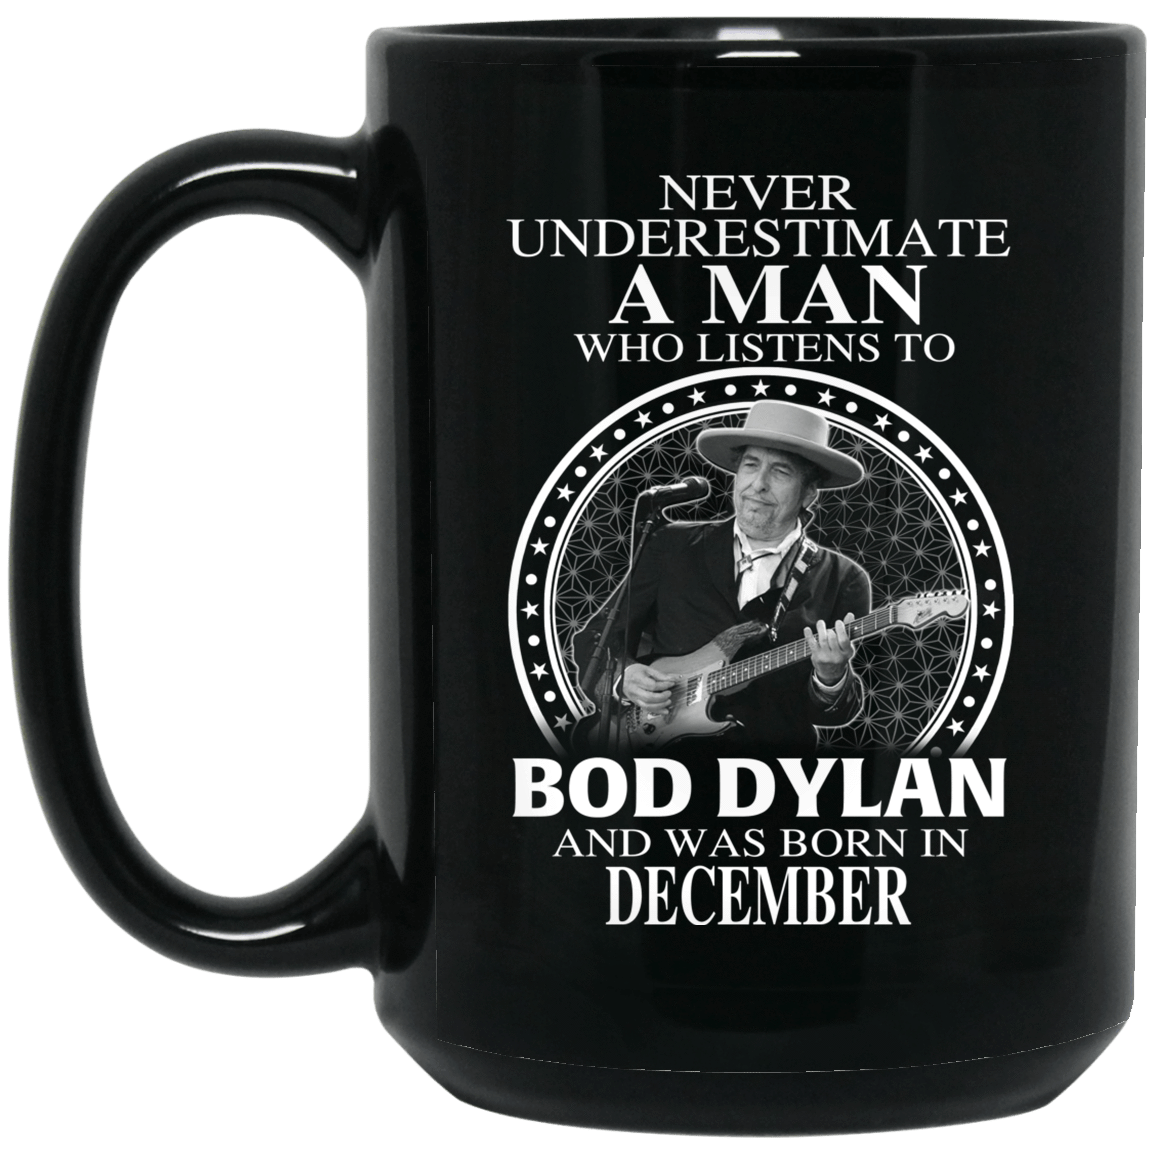 A Man Who Listens To Bob Dylan And Was Born In December Mug 1066-10182-76154702-49311 - Tee Ript